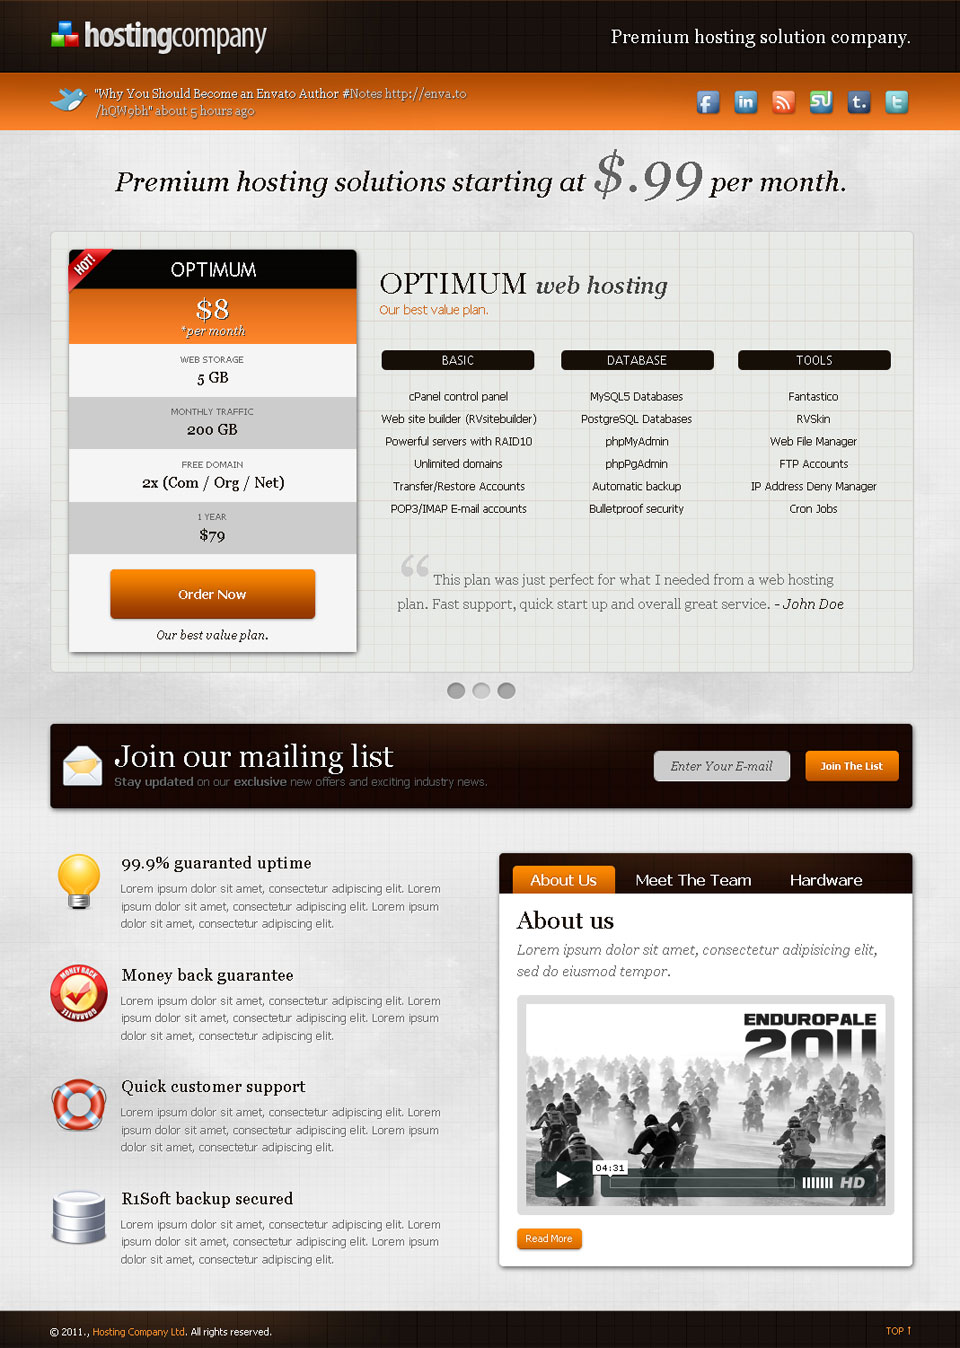 Hosting Company Landing Page - Orange - Slider